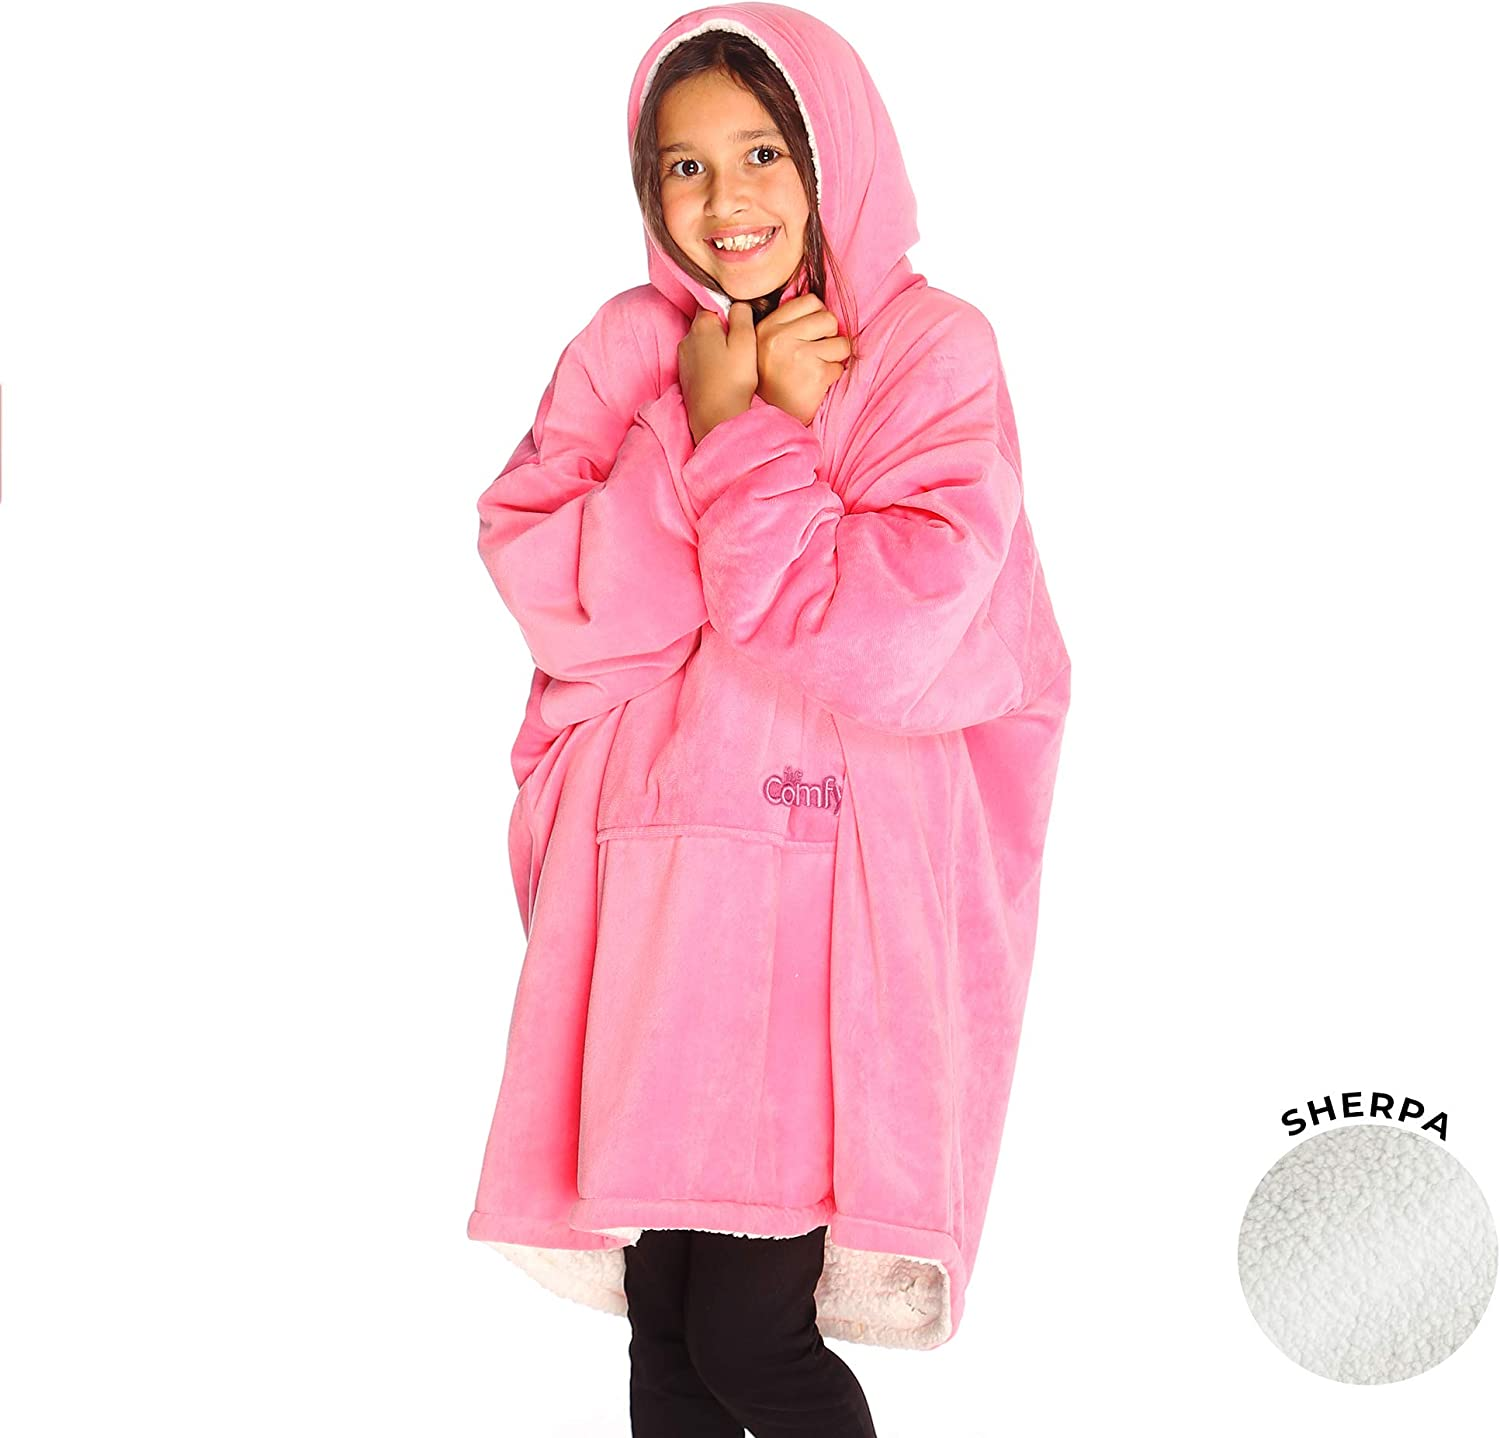 THE COMFY | The Original Oversized Sherpa Blanket Sweatshirt for Kids, Seen On Shark Tank, One Size Fits All Pink